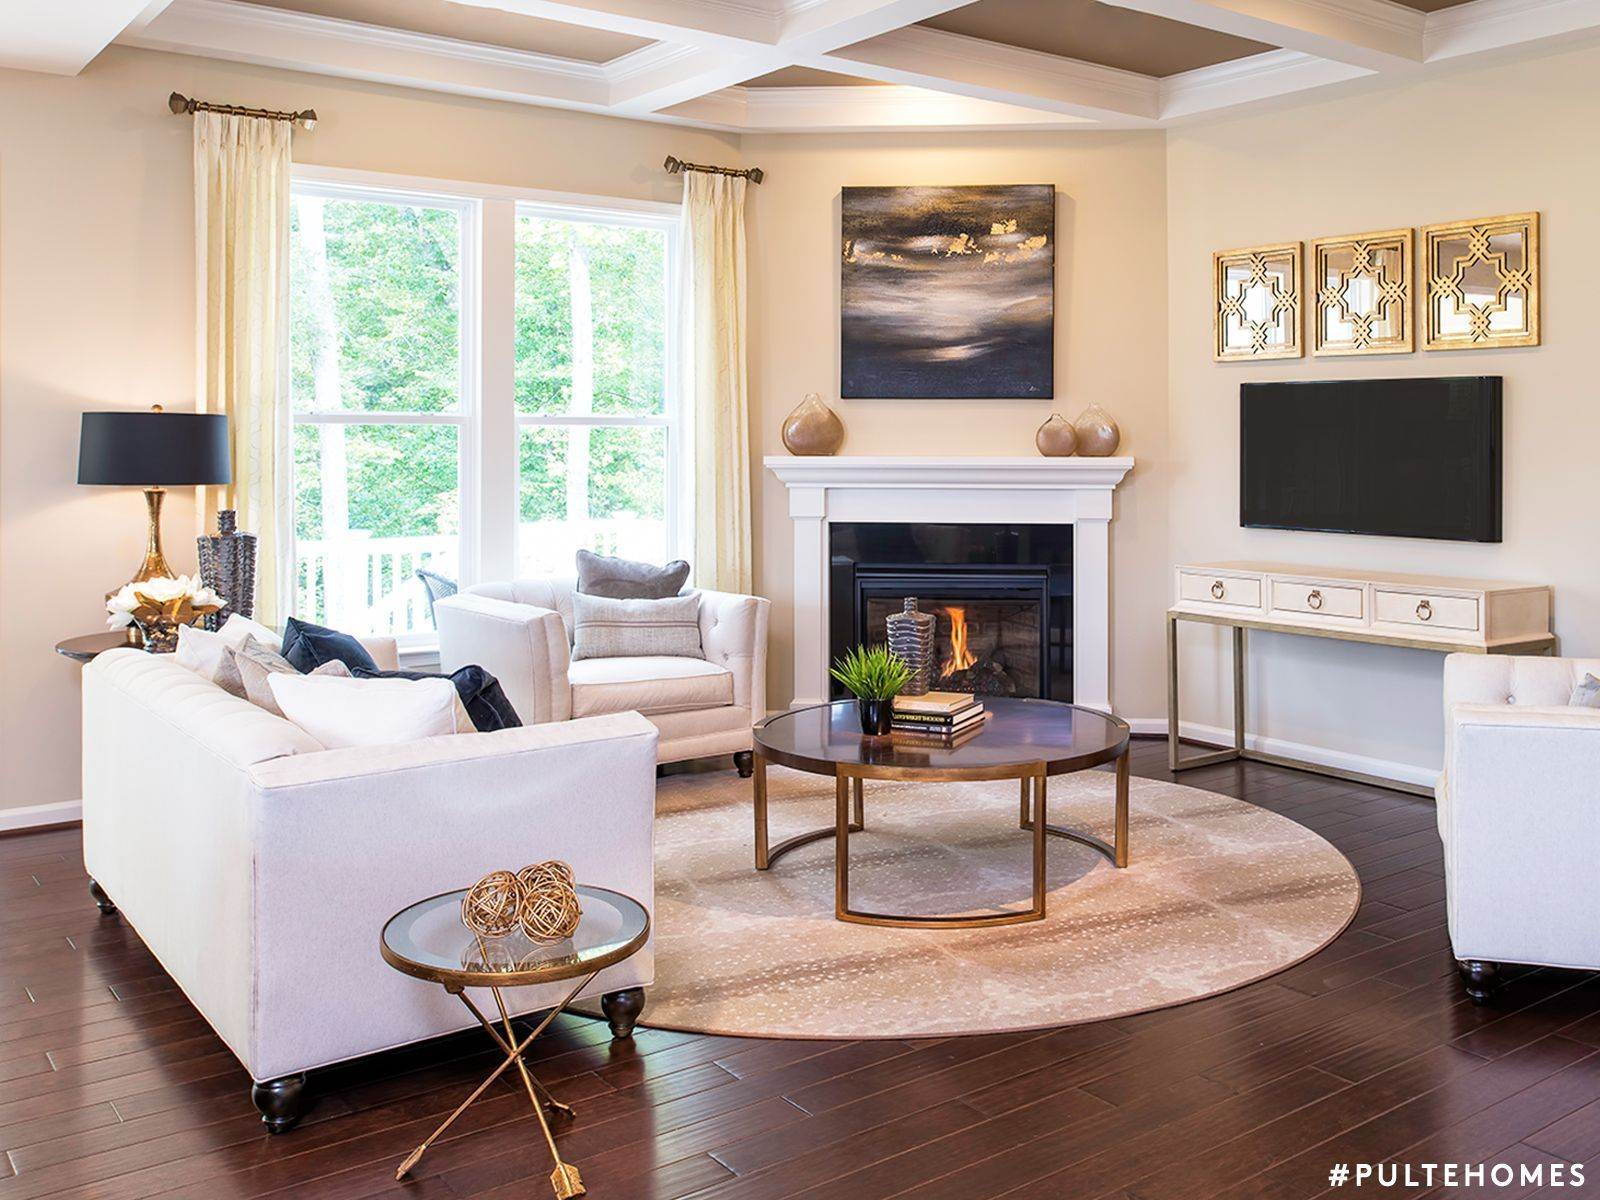 Pin By Ludmyla Samoylova On Home In 2021 Corner Fireplace Living Room Awkward Living Room Layout Small Living Room Layout